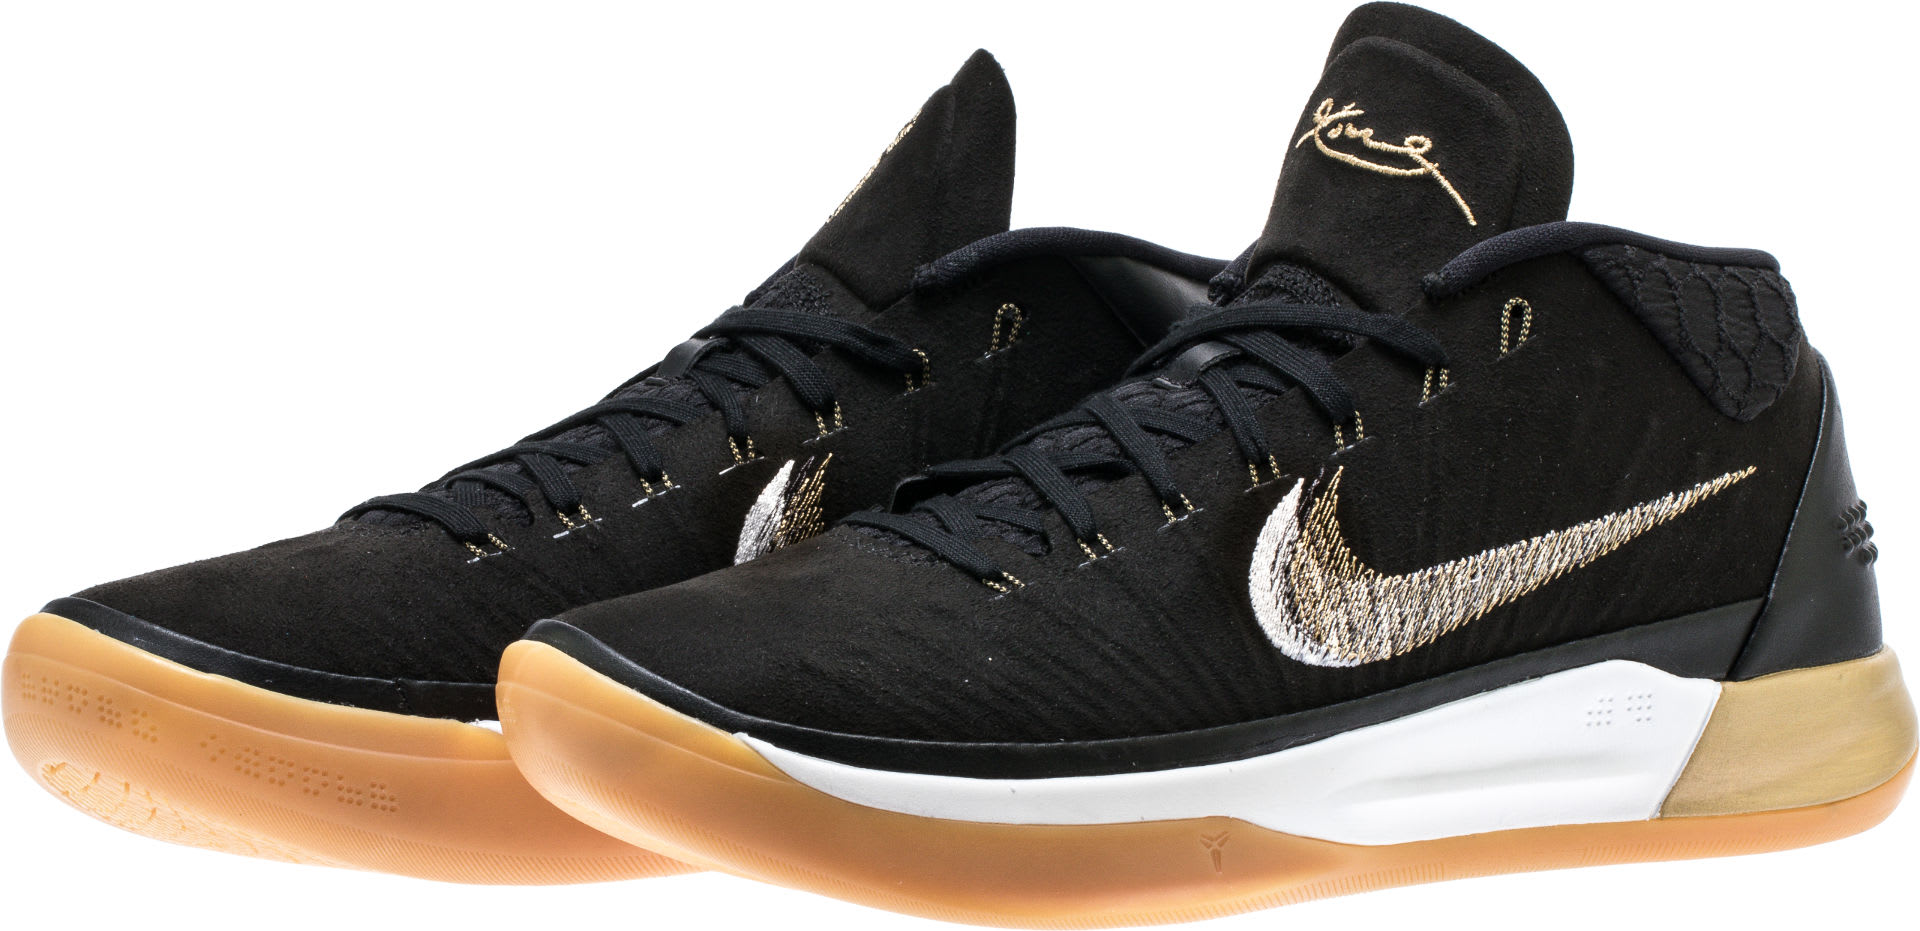 Nike Kobe A.D. Mid Black/Gold Release Date 922482-009 Pair